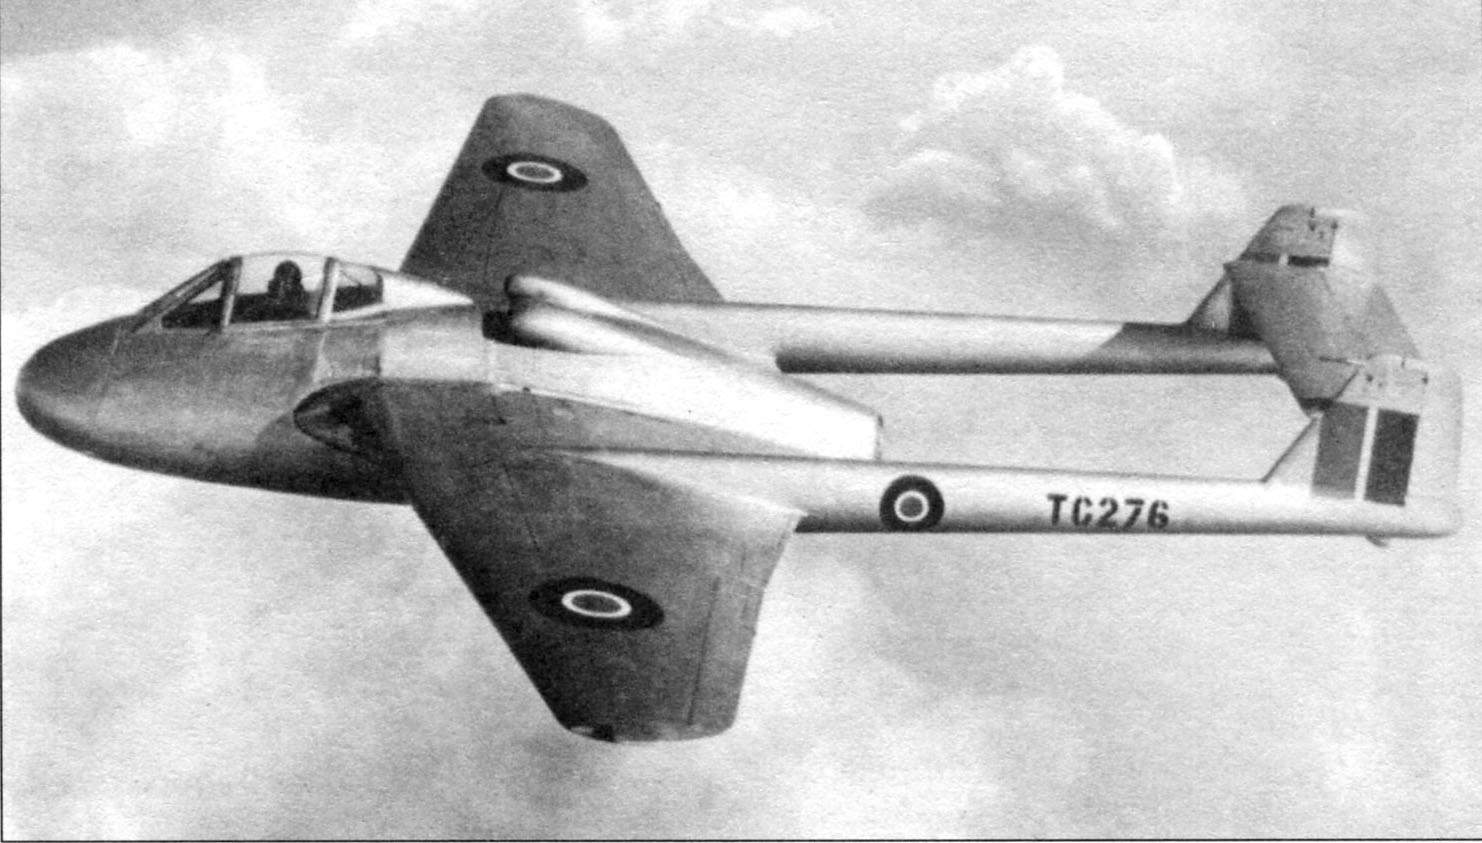 De Havilland DH-100 Vampire F.2